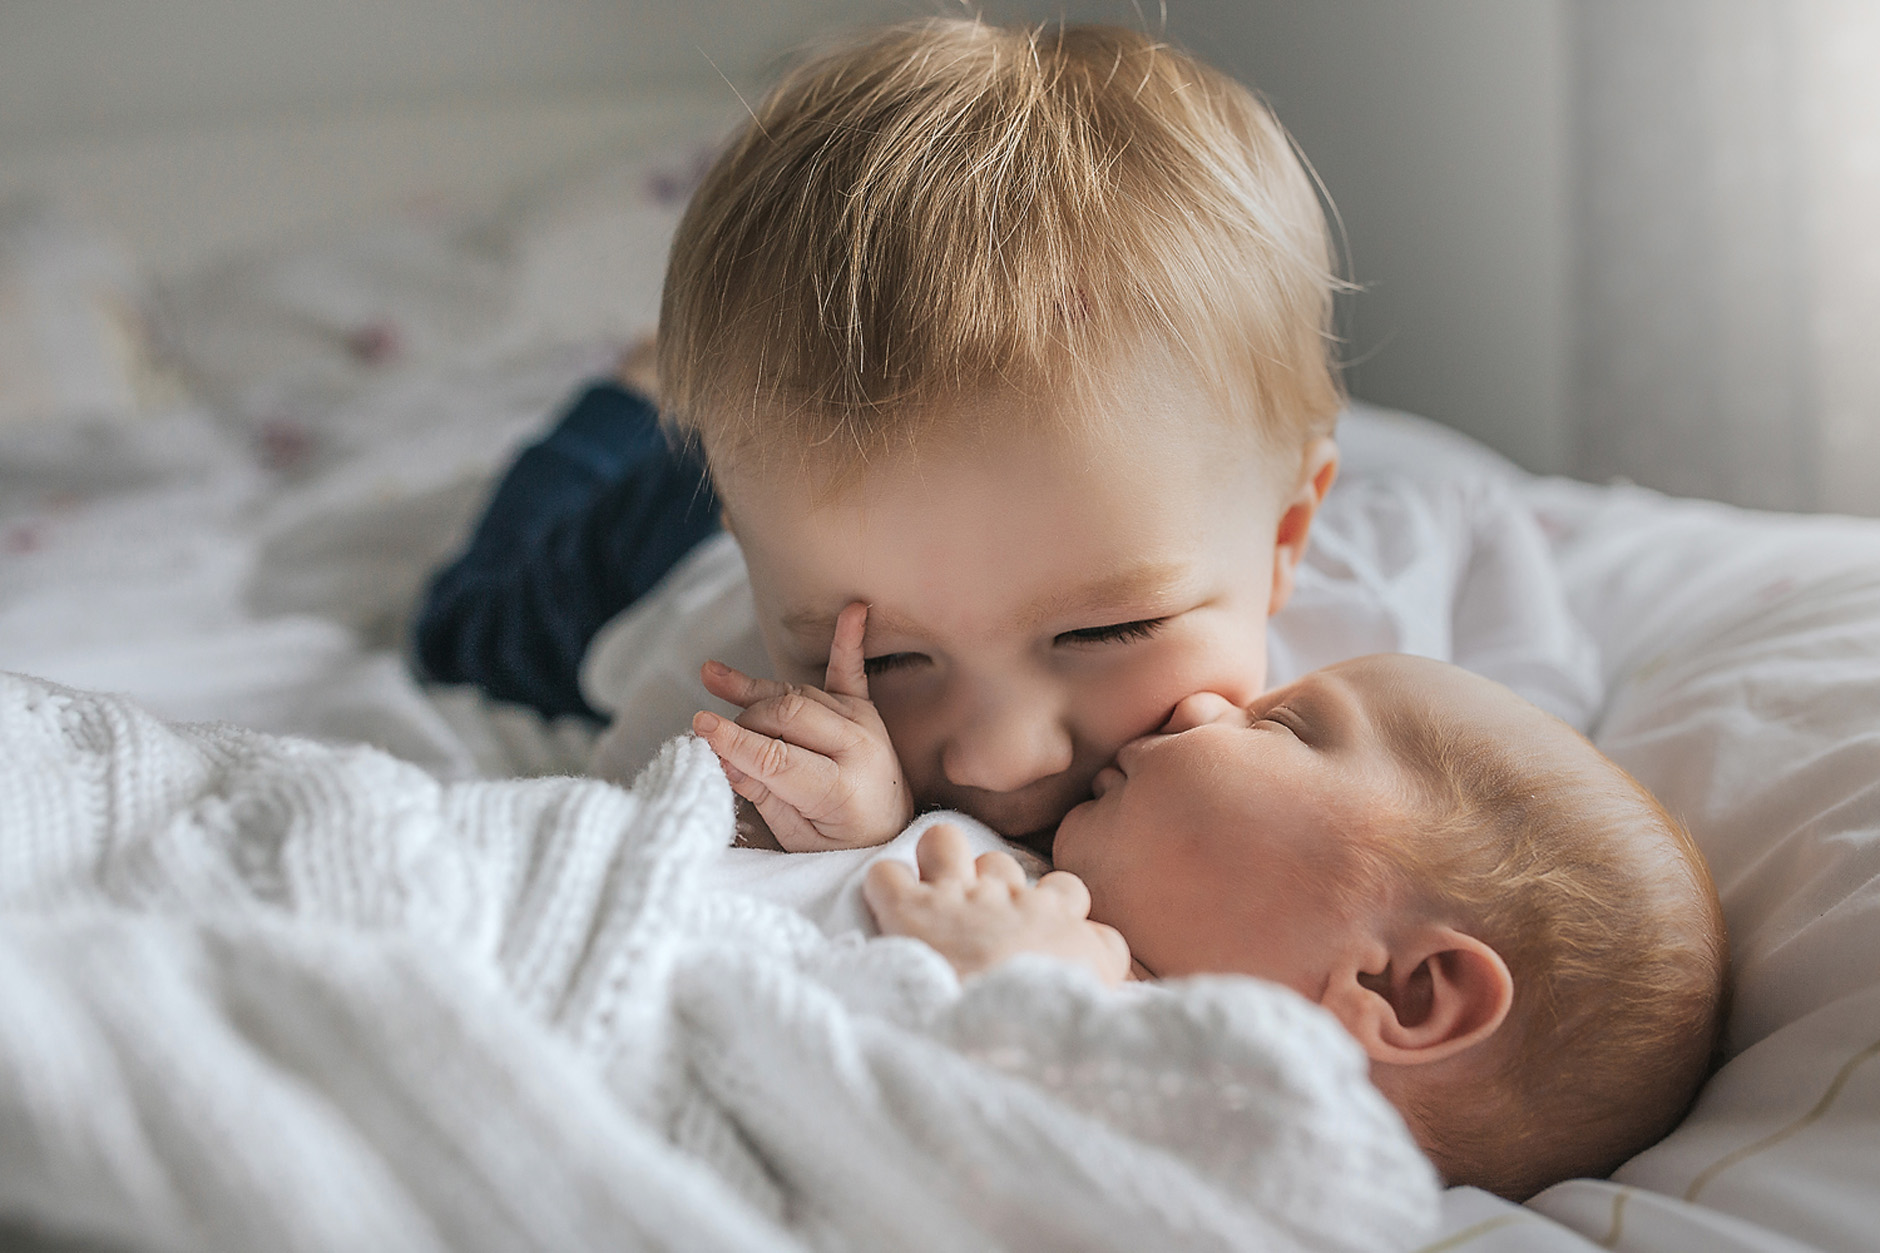 Big brother smiling and kissing his baby brother